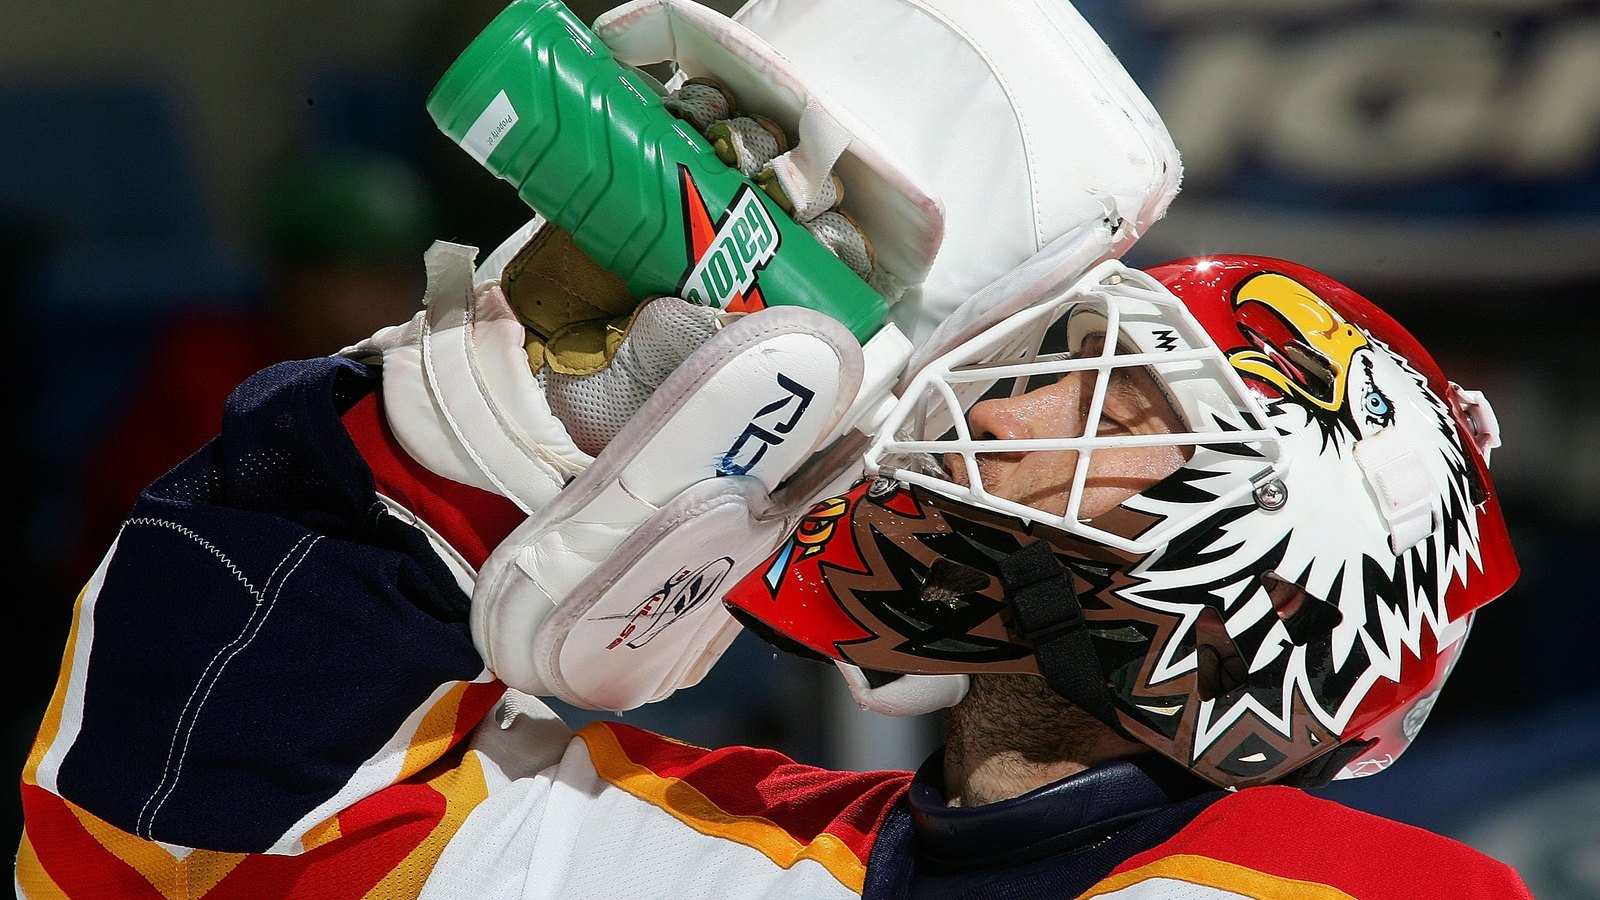 The Aesthetic Goalie Masks Move From Pure Protection To Protective